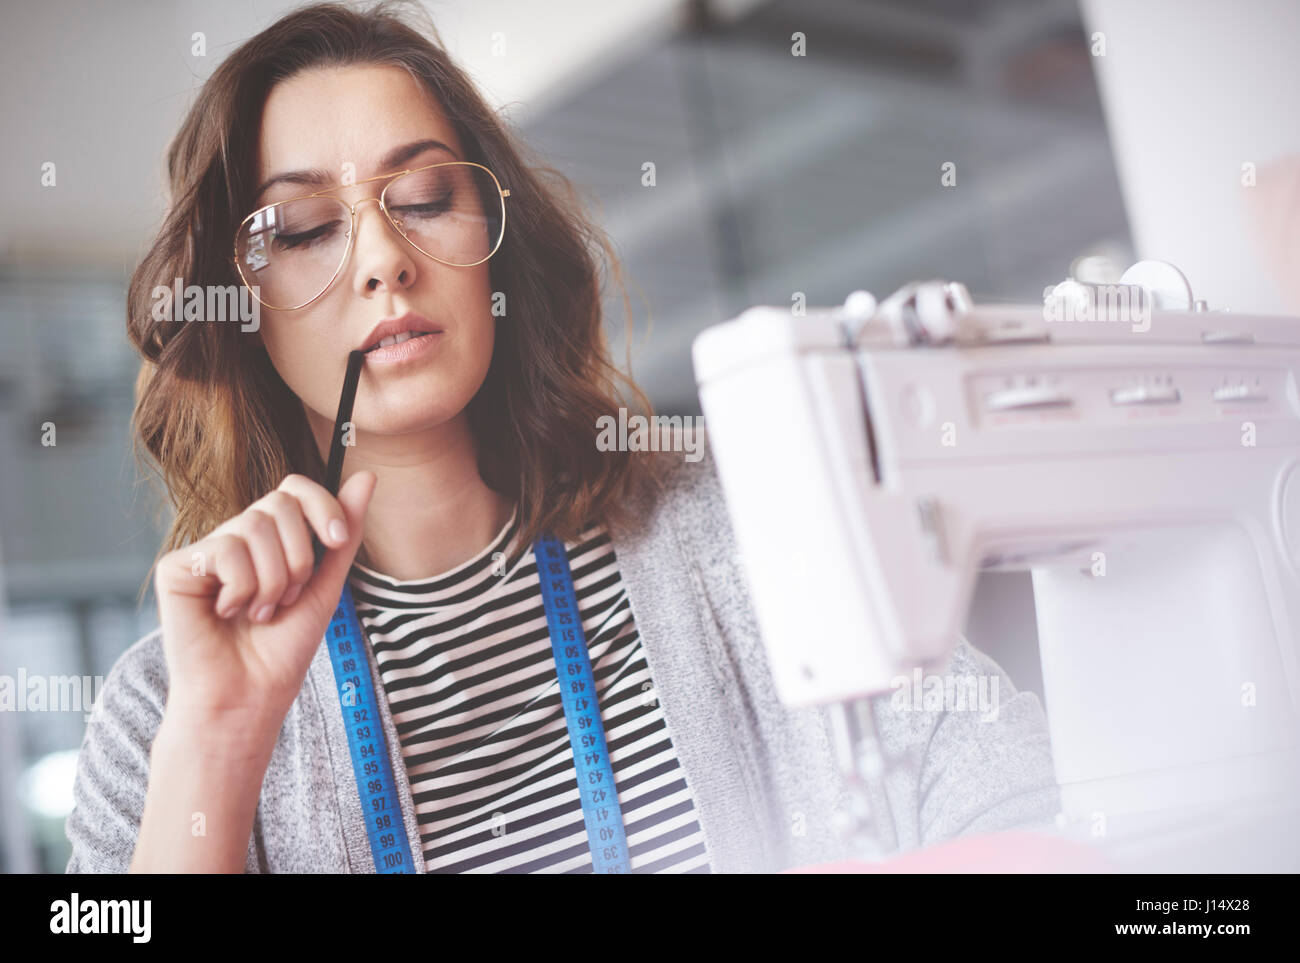 Tailor deliberating on next move - Stock Image